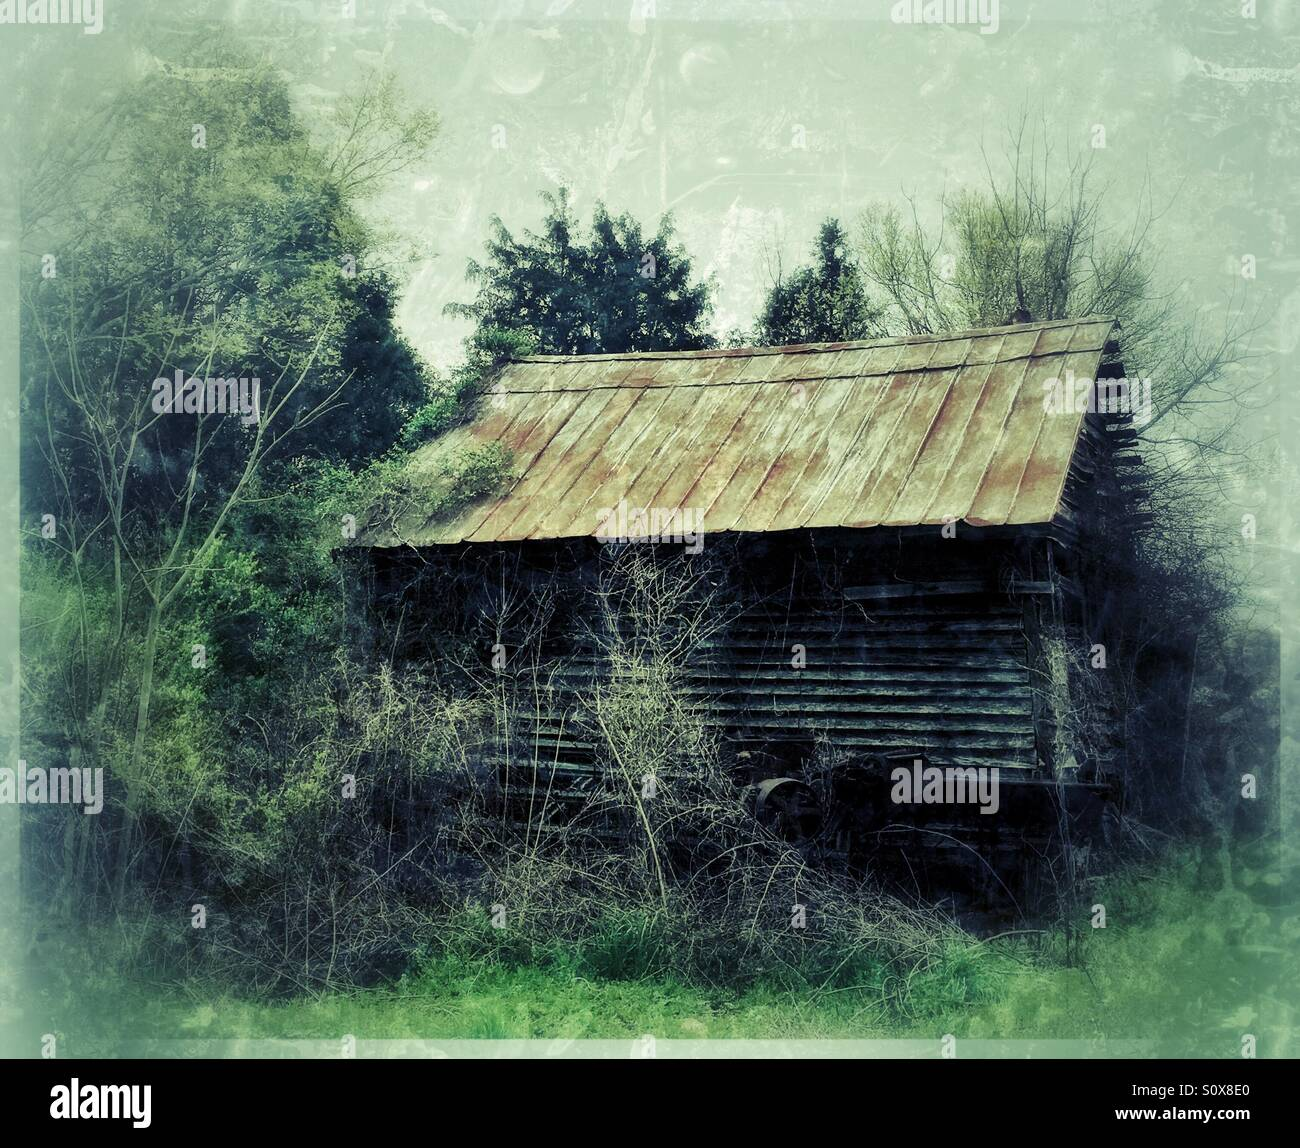 Shack with tin roof and grunge film - Stock Image